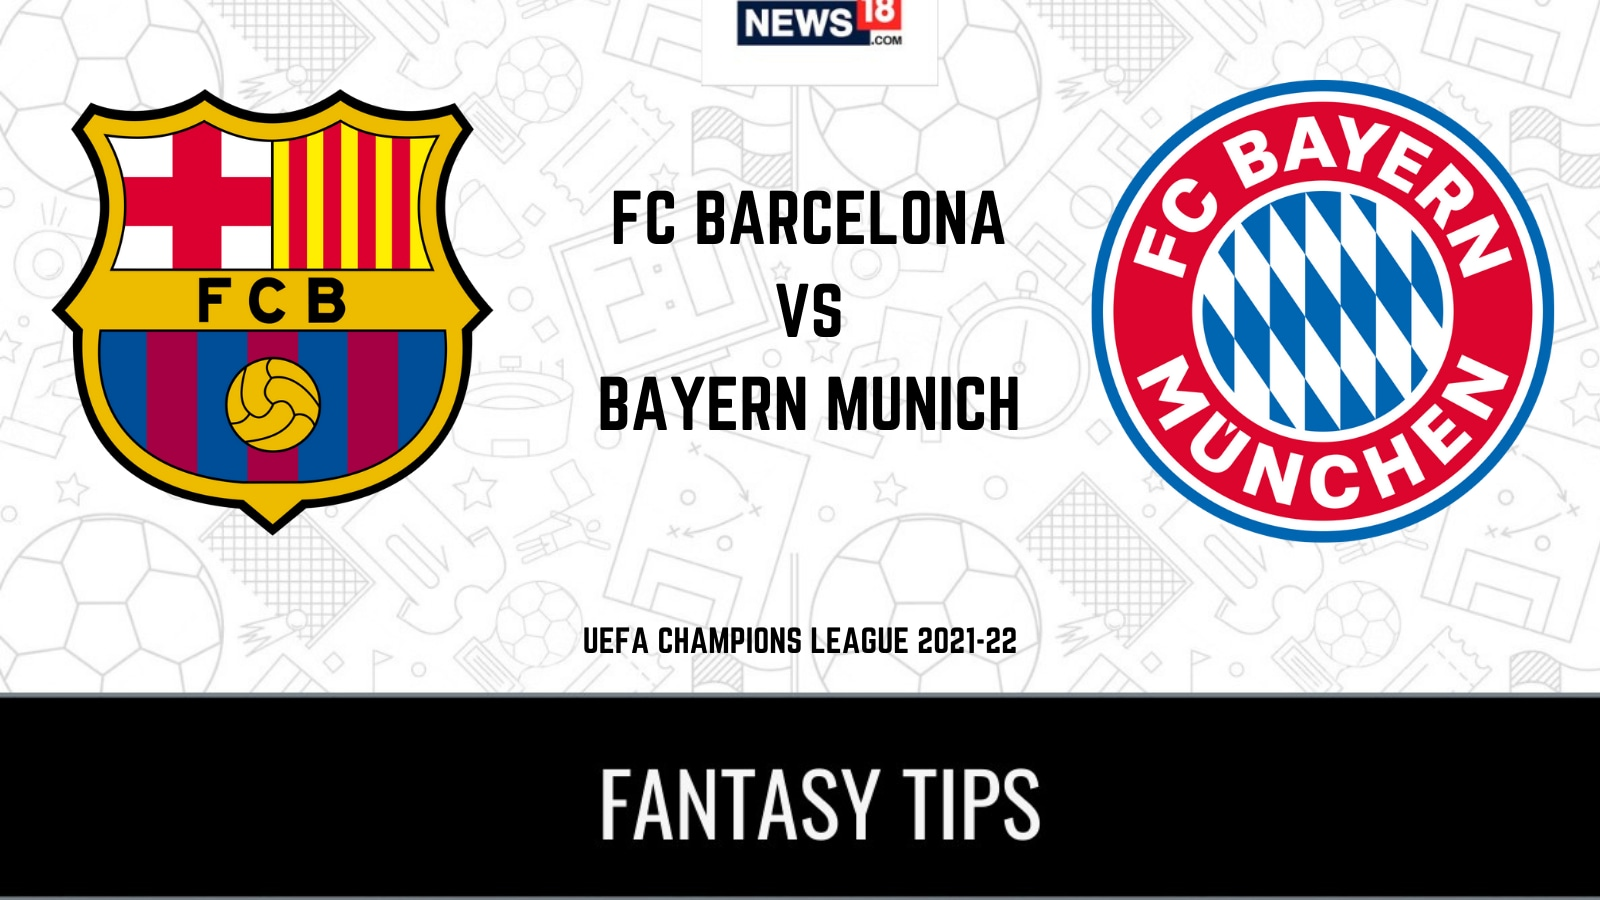 FCB vs BAY Dream11 Team Prediction and Tips for today's UEFA Champions League match: Check Captain, Vice-Captain and probable playing XIs for today's UEFA Champions League match FC Barcelona vs Bayern Munich September 15 12:30 AM IST